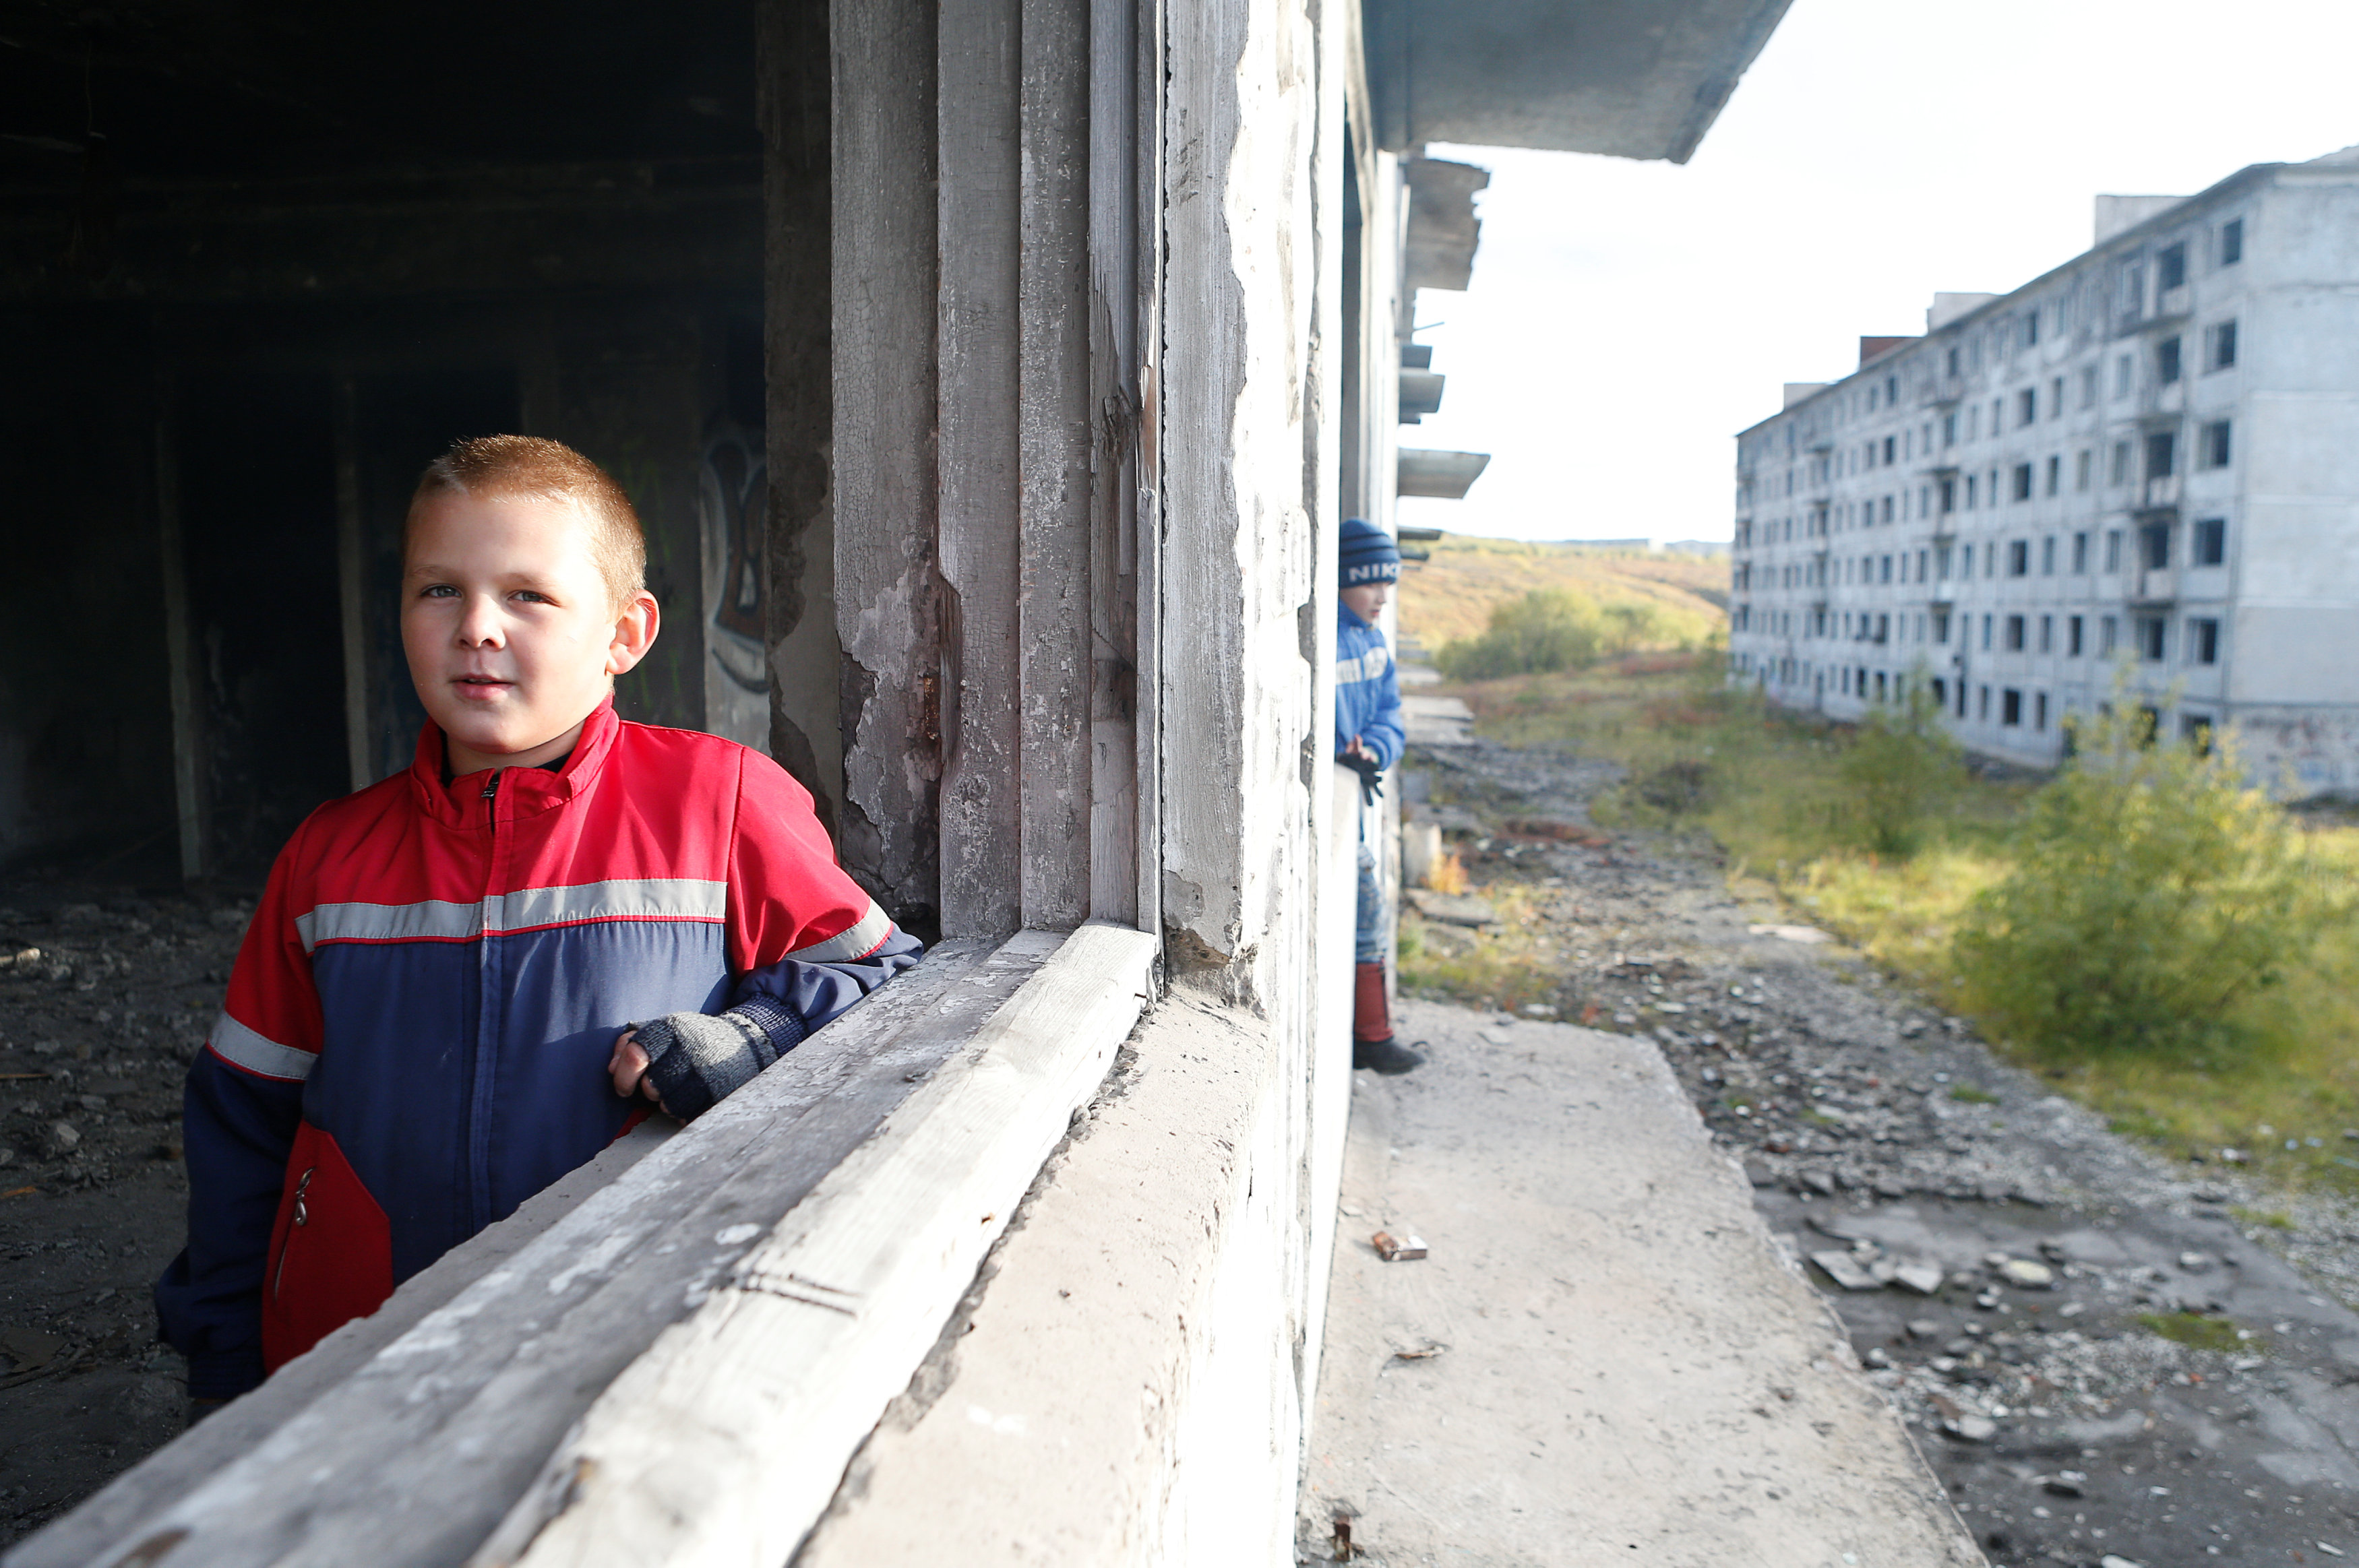 Children play inside an abandoned building in Rudnik settlement near the far northern city of Vorkuta